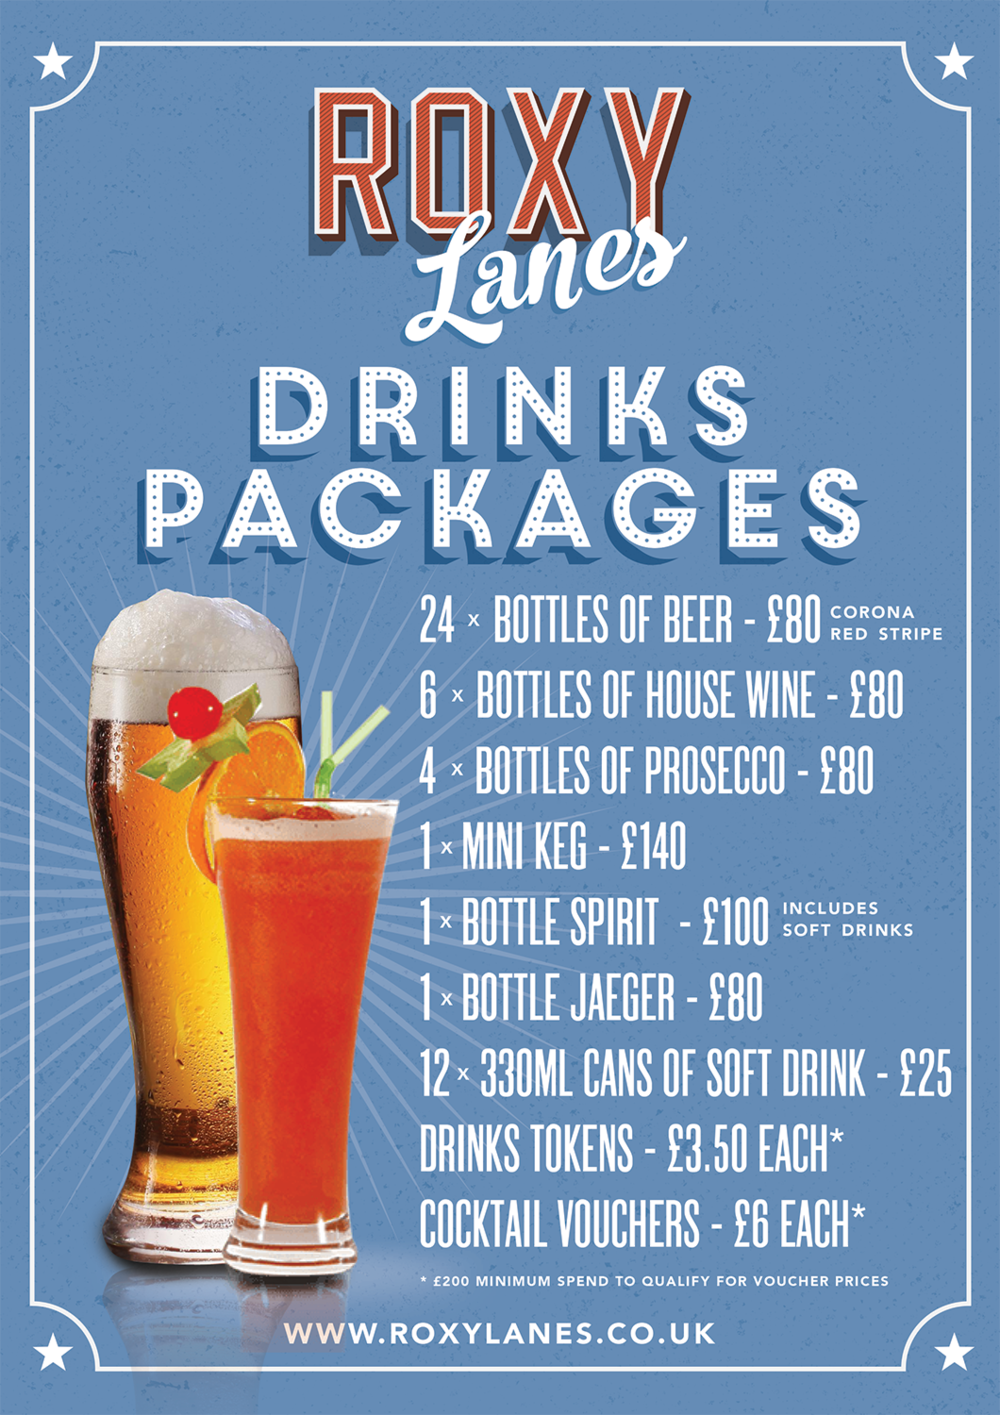 RL_Drinks-Packages_WEB (1) (1).png